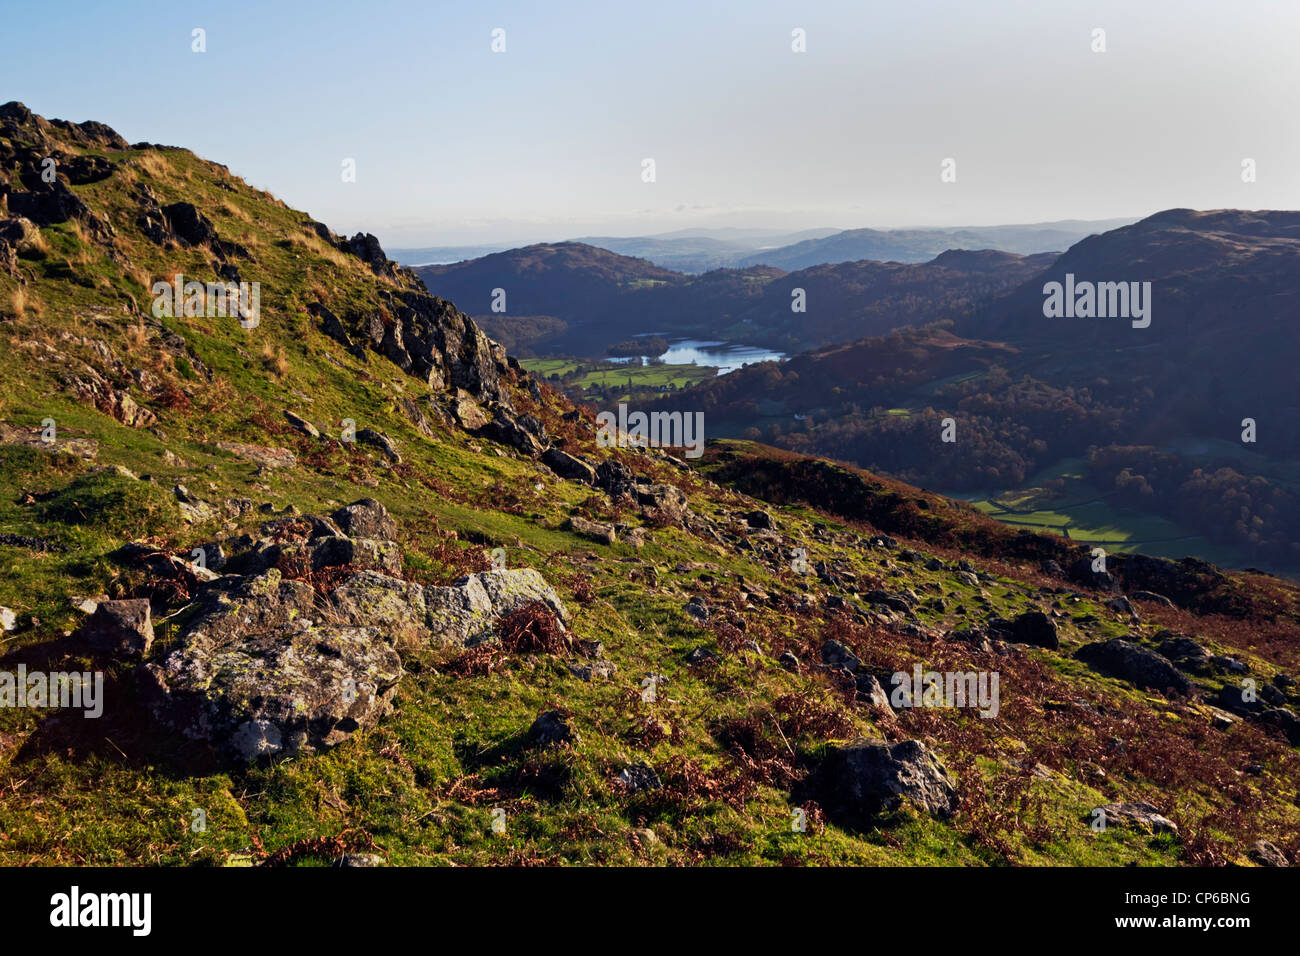 Looking over Grasmere from Gibson Knott in the Lake District National Park, Cumbria, England. - Stock Image